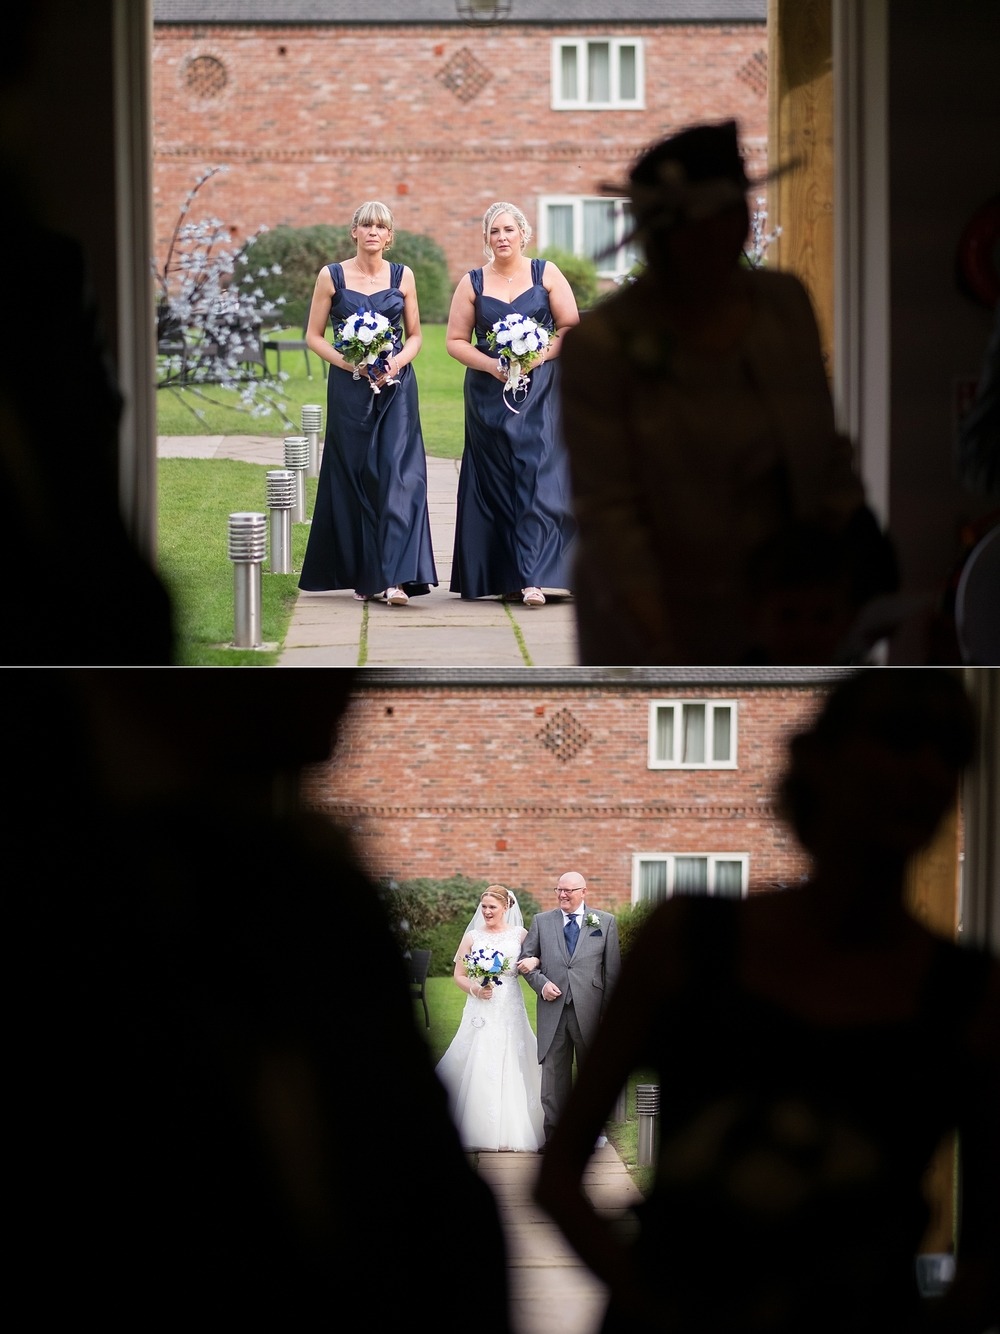 wedding photographer slaters baldwins gate 13.jpg